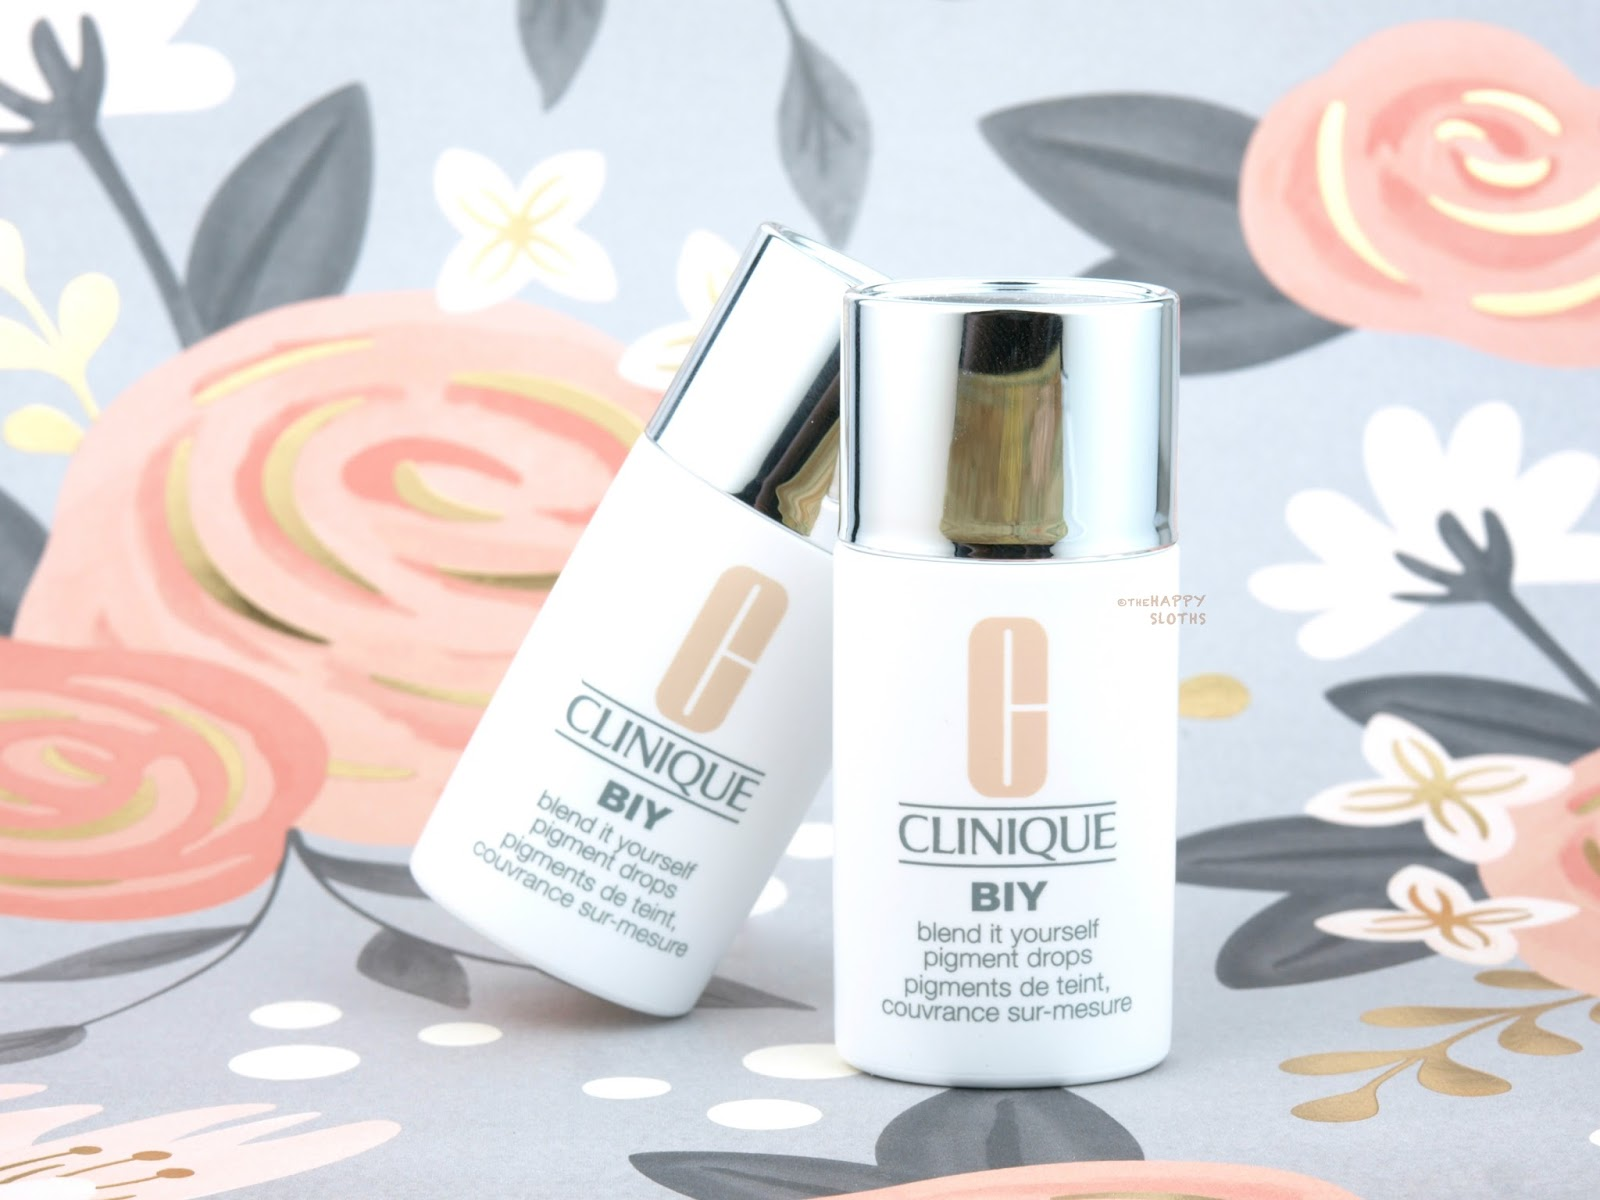 Clinique BIY Blend It Yourself Pigment Drops: Review and Swatches